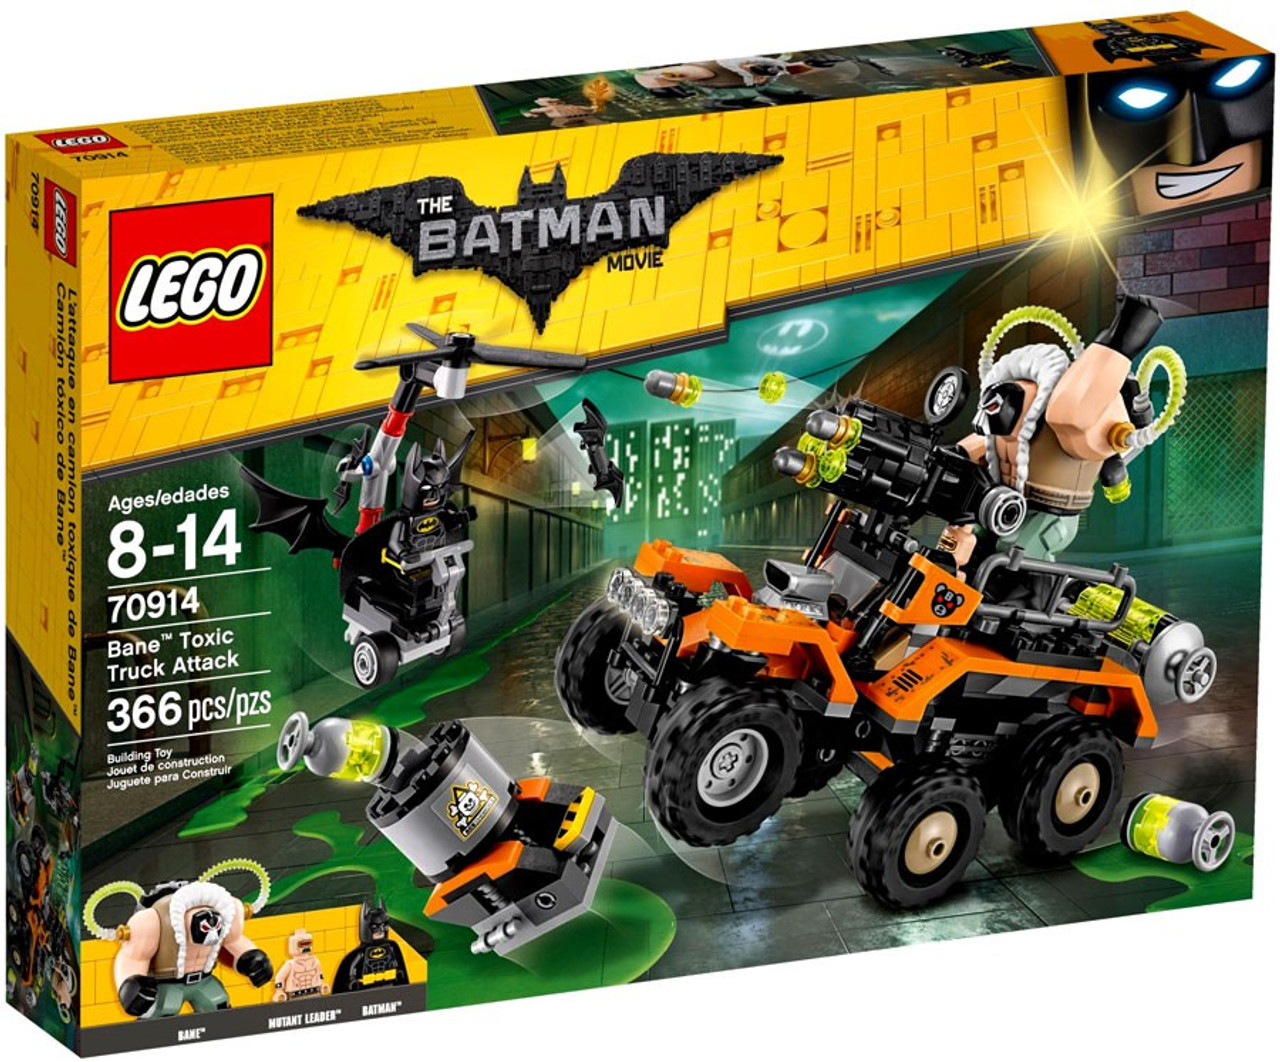 Truck Batman Bane Toxic Set70914damaged Lego Attack Dc Movie Package The dCexoWrB